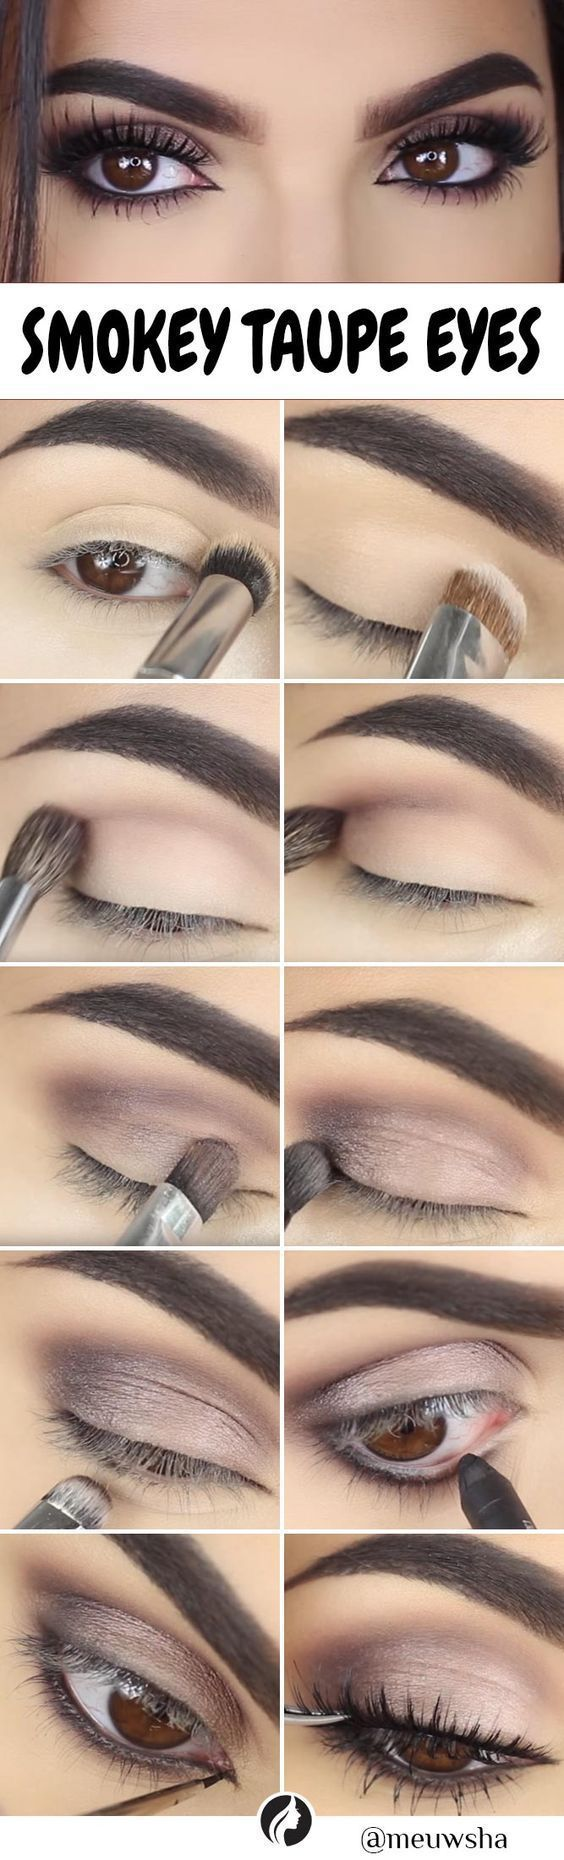 The Ultimate Step-By-Step Tutorial for Perfect Makeup Application. Start with a clean slate! Make sure your face is fresh and